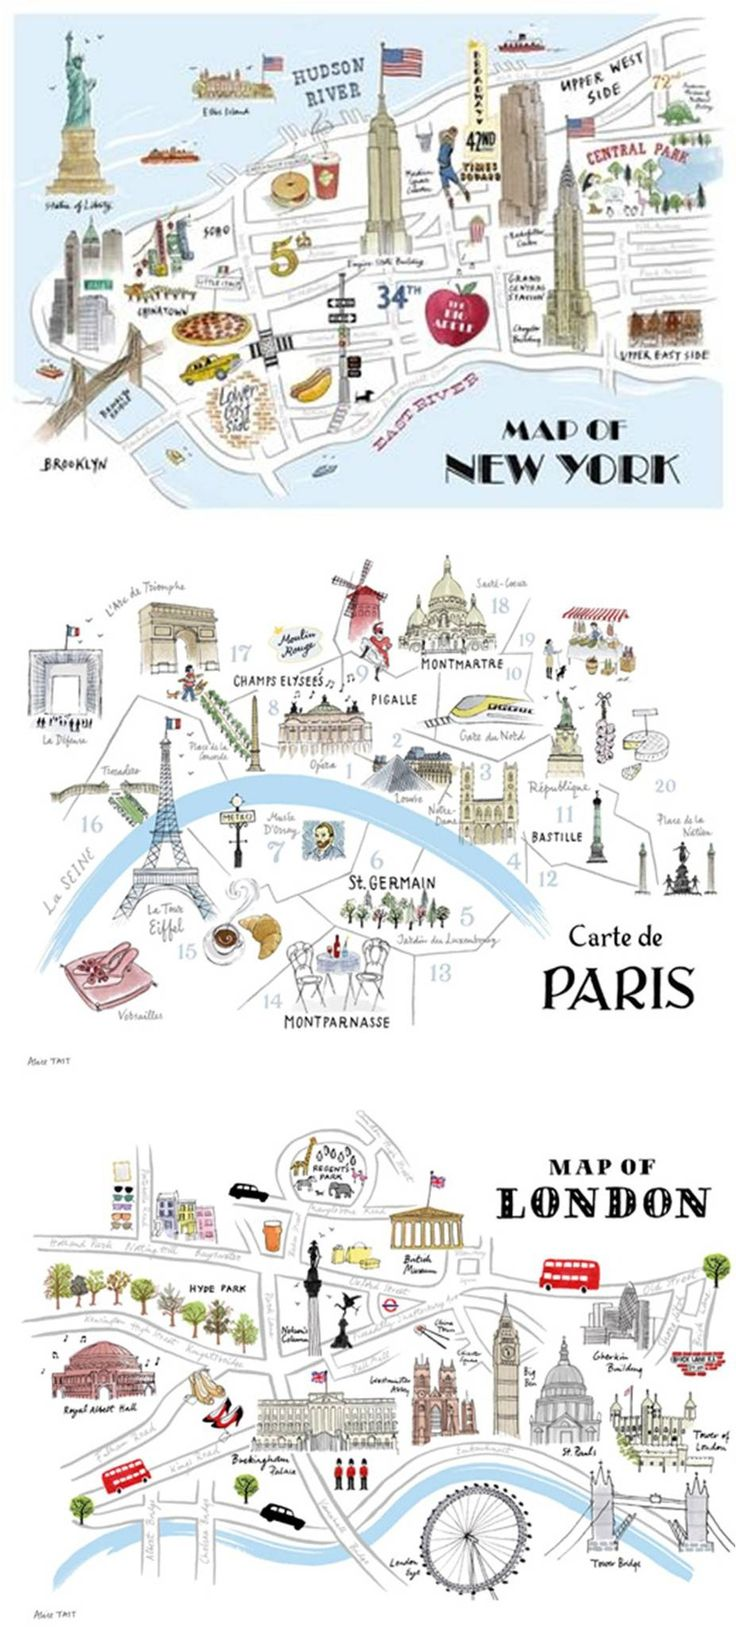 New York, Paris and London Maps: